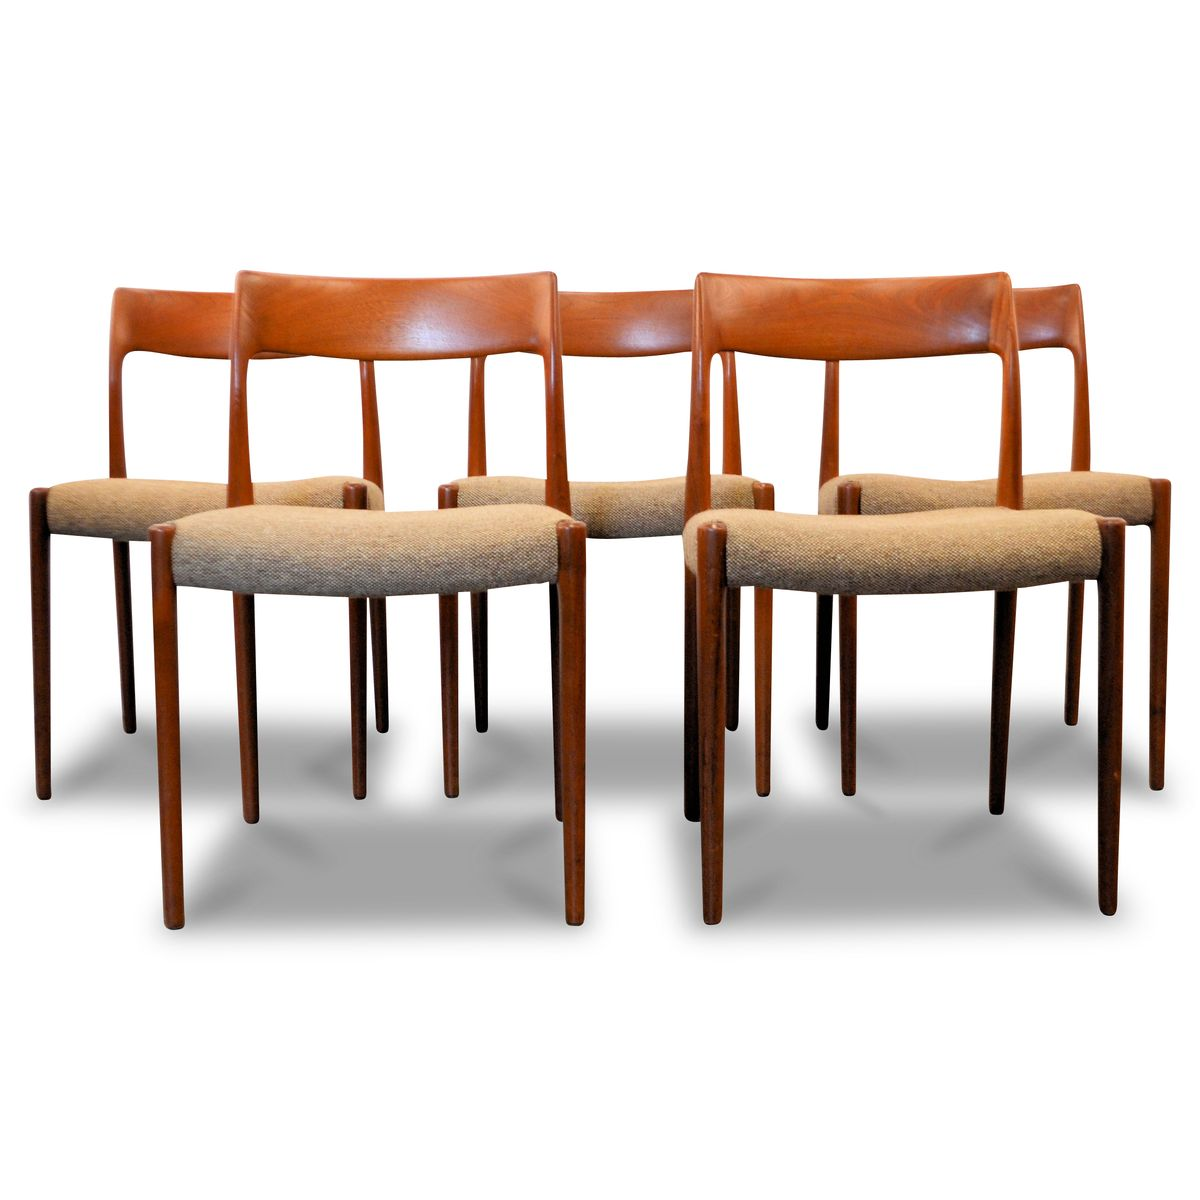 Good Nr. 77 Teak Dining Chairs By Niels O. Møller For J.L. Møller, 1960s, Set Of  5 For Sale At Pamono